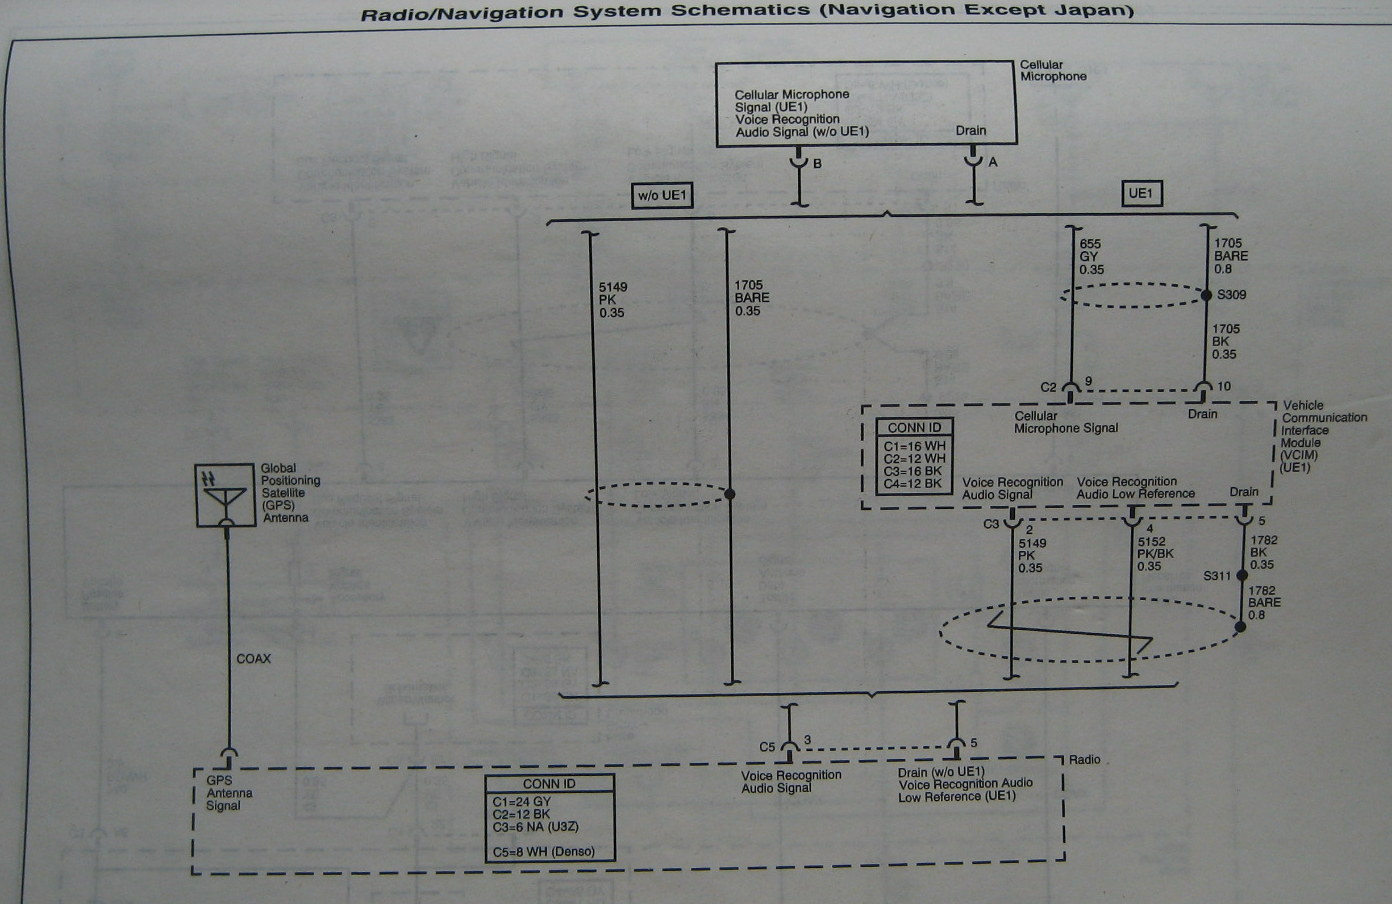 Wiring Harness And Component Locations Wiring Harness And Component